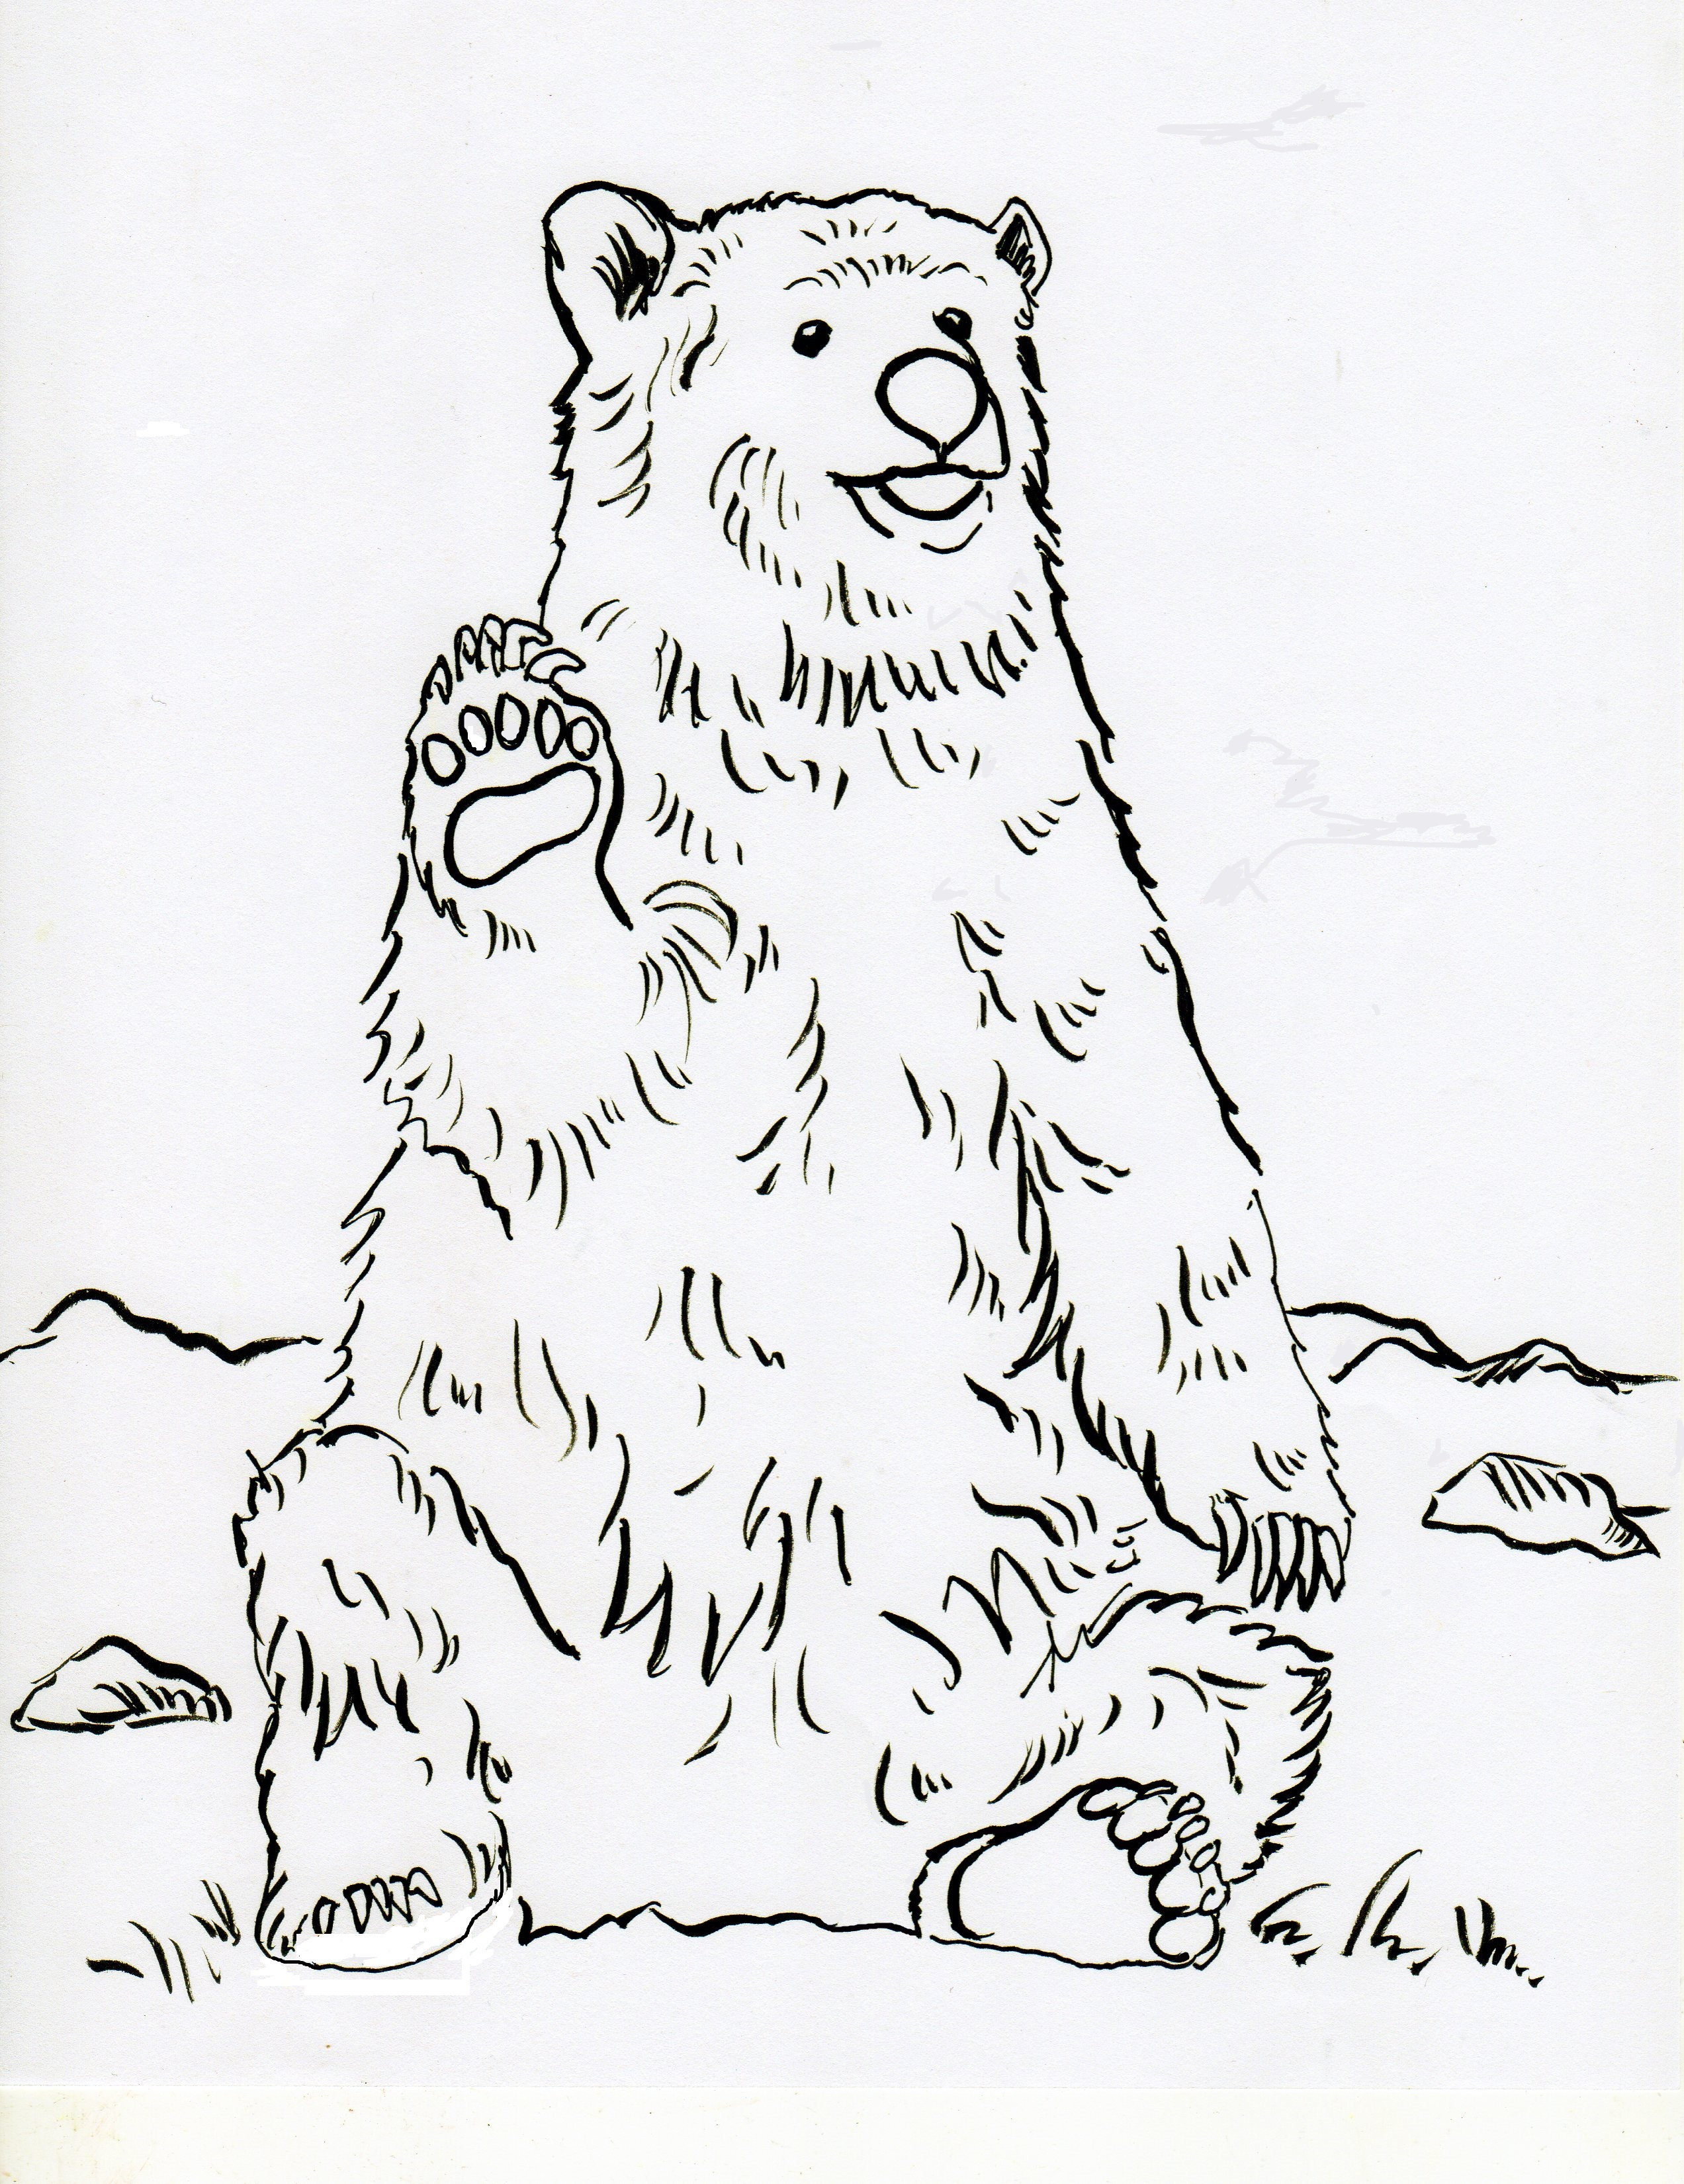 grizzly bear coloring page - Grizzly Bear Coloring Pages